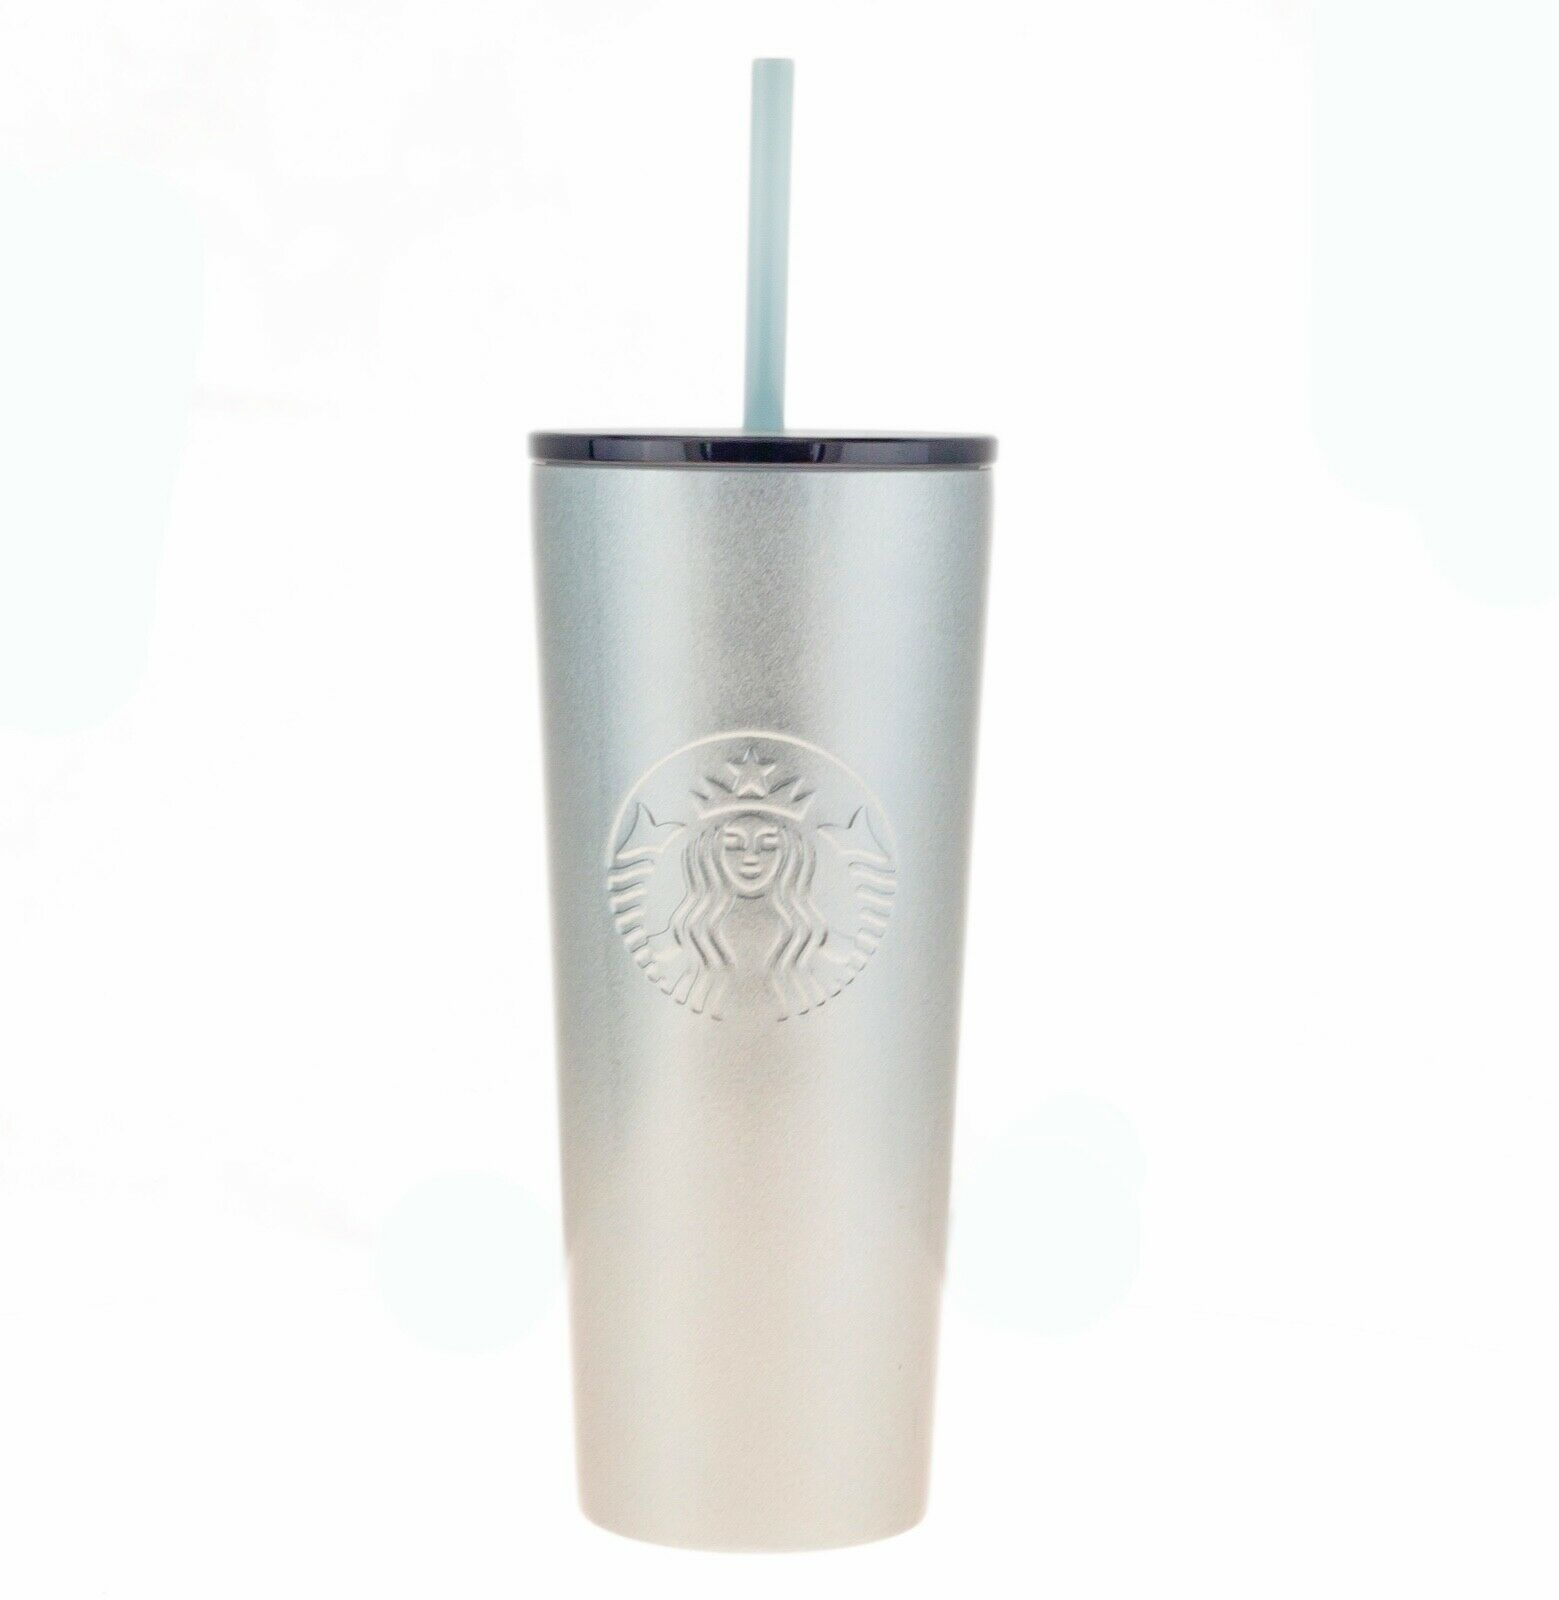 Primary image for Starbucks Cold Cup Silver Blue Glitter Stainless Steel Tumbler Cold Cup 16oz